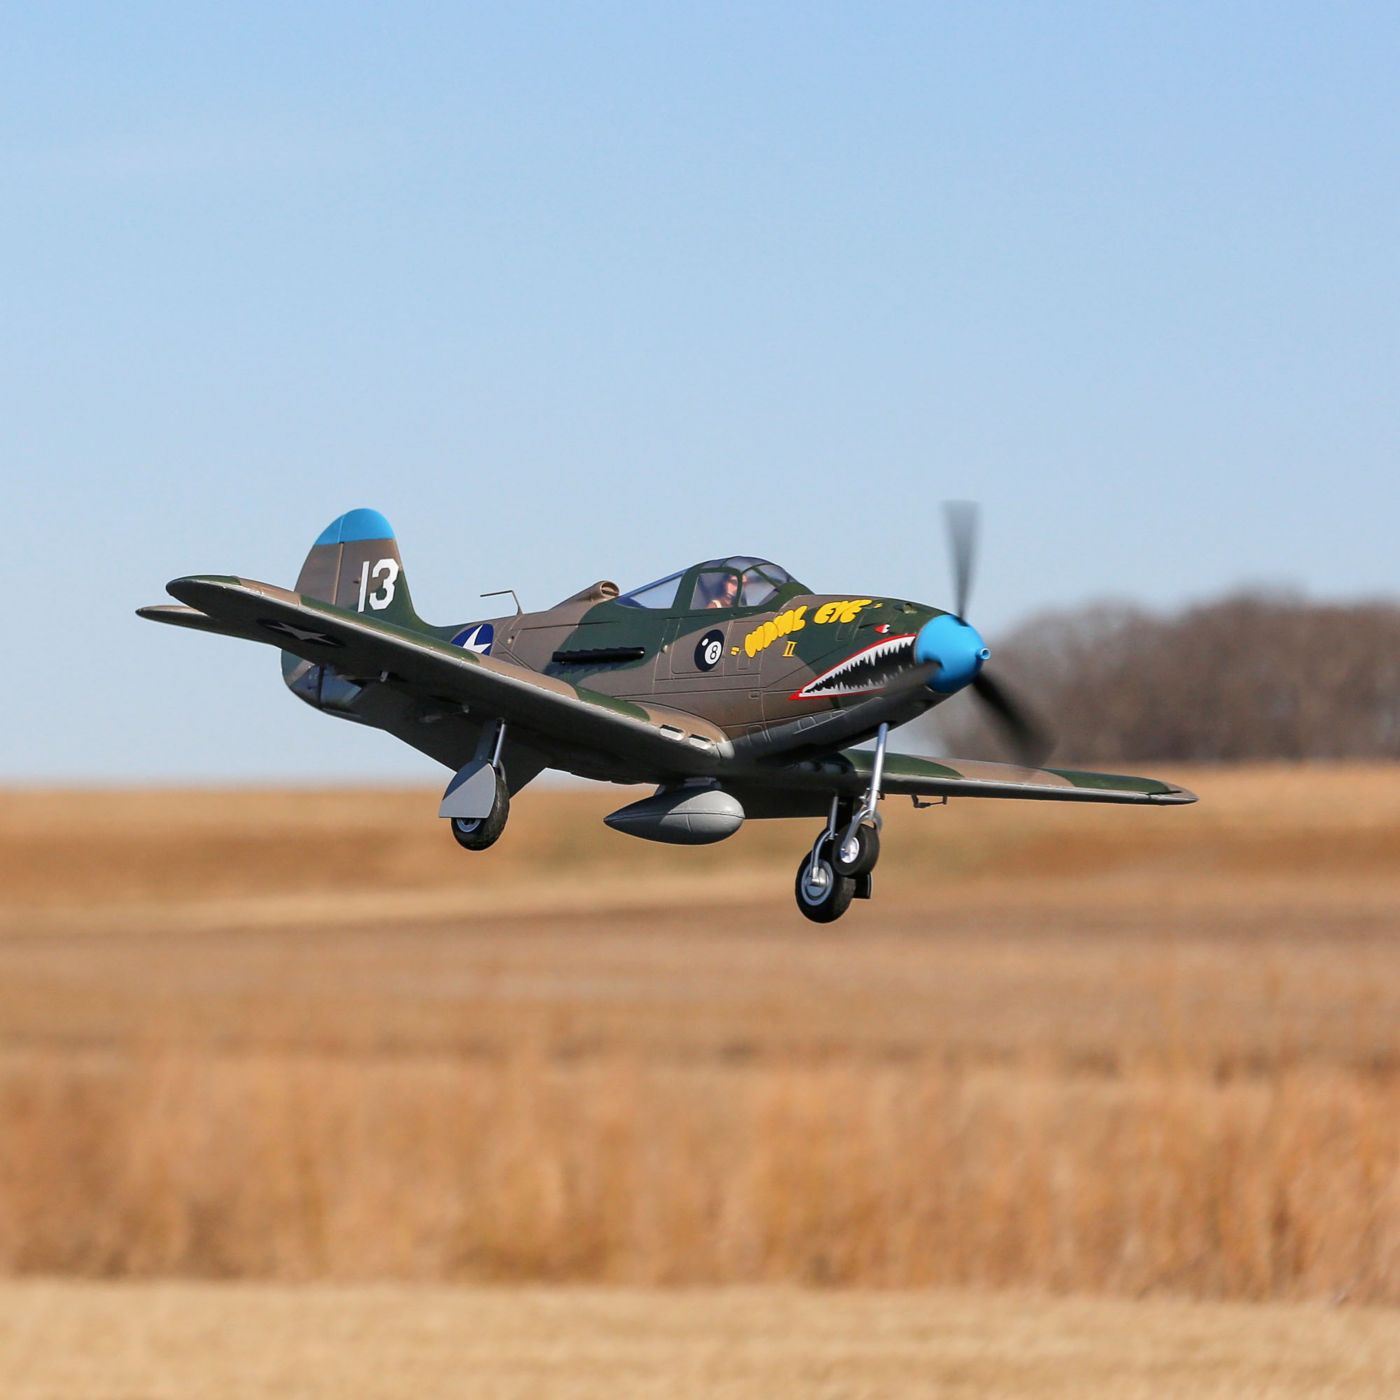 New To Rc Planes Need Some Guidance Rcpowerscom